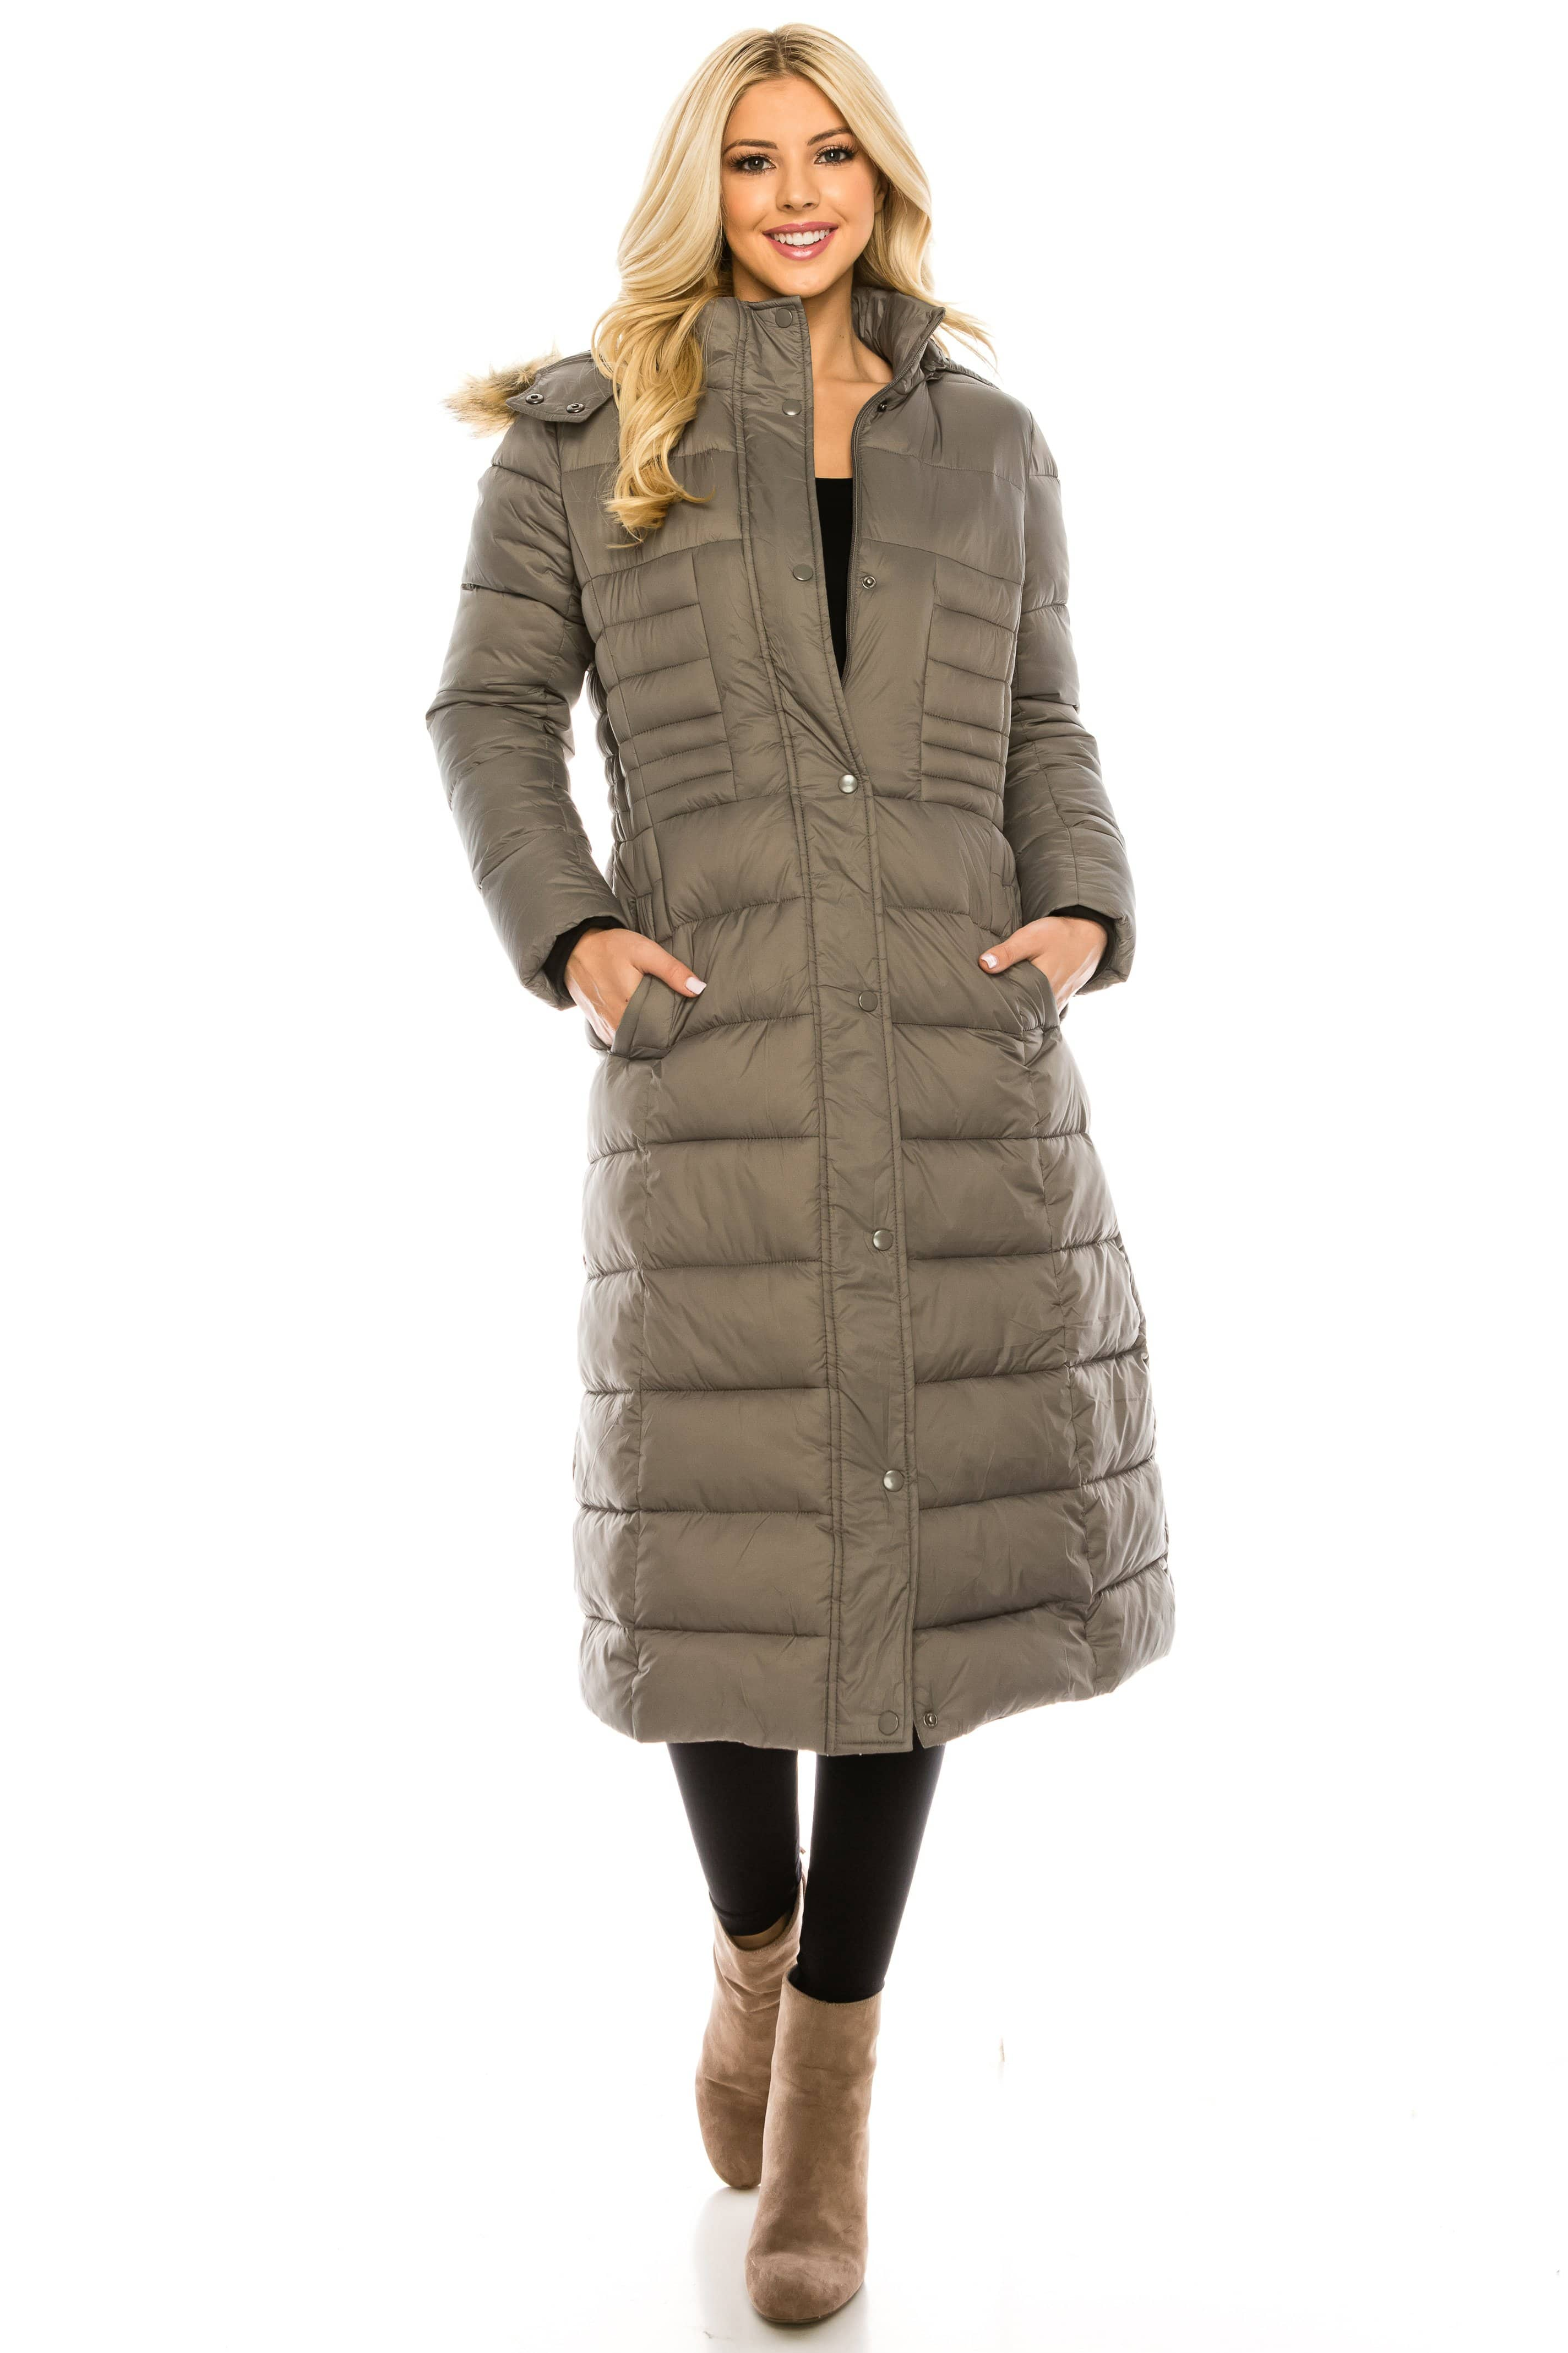 DAILYHAUTE Women's coats GREY / S Haute Edition Women's Maxi Length Quilted Puffer with Fur Lined Hood